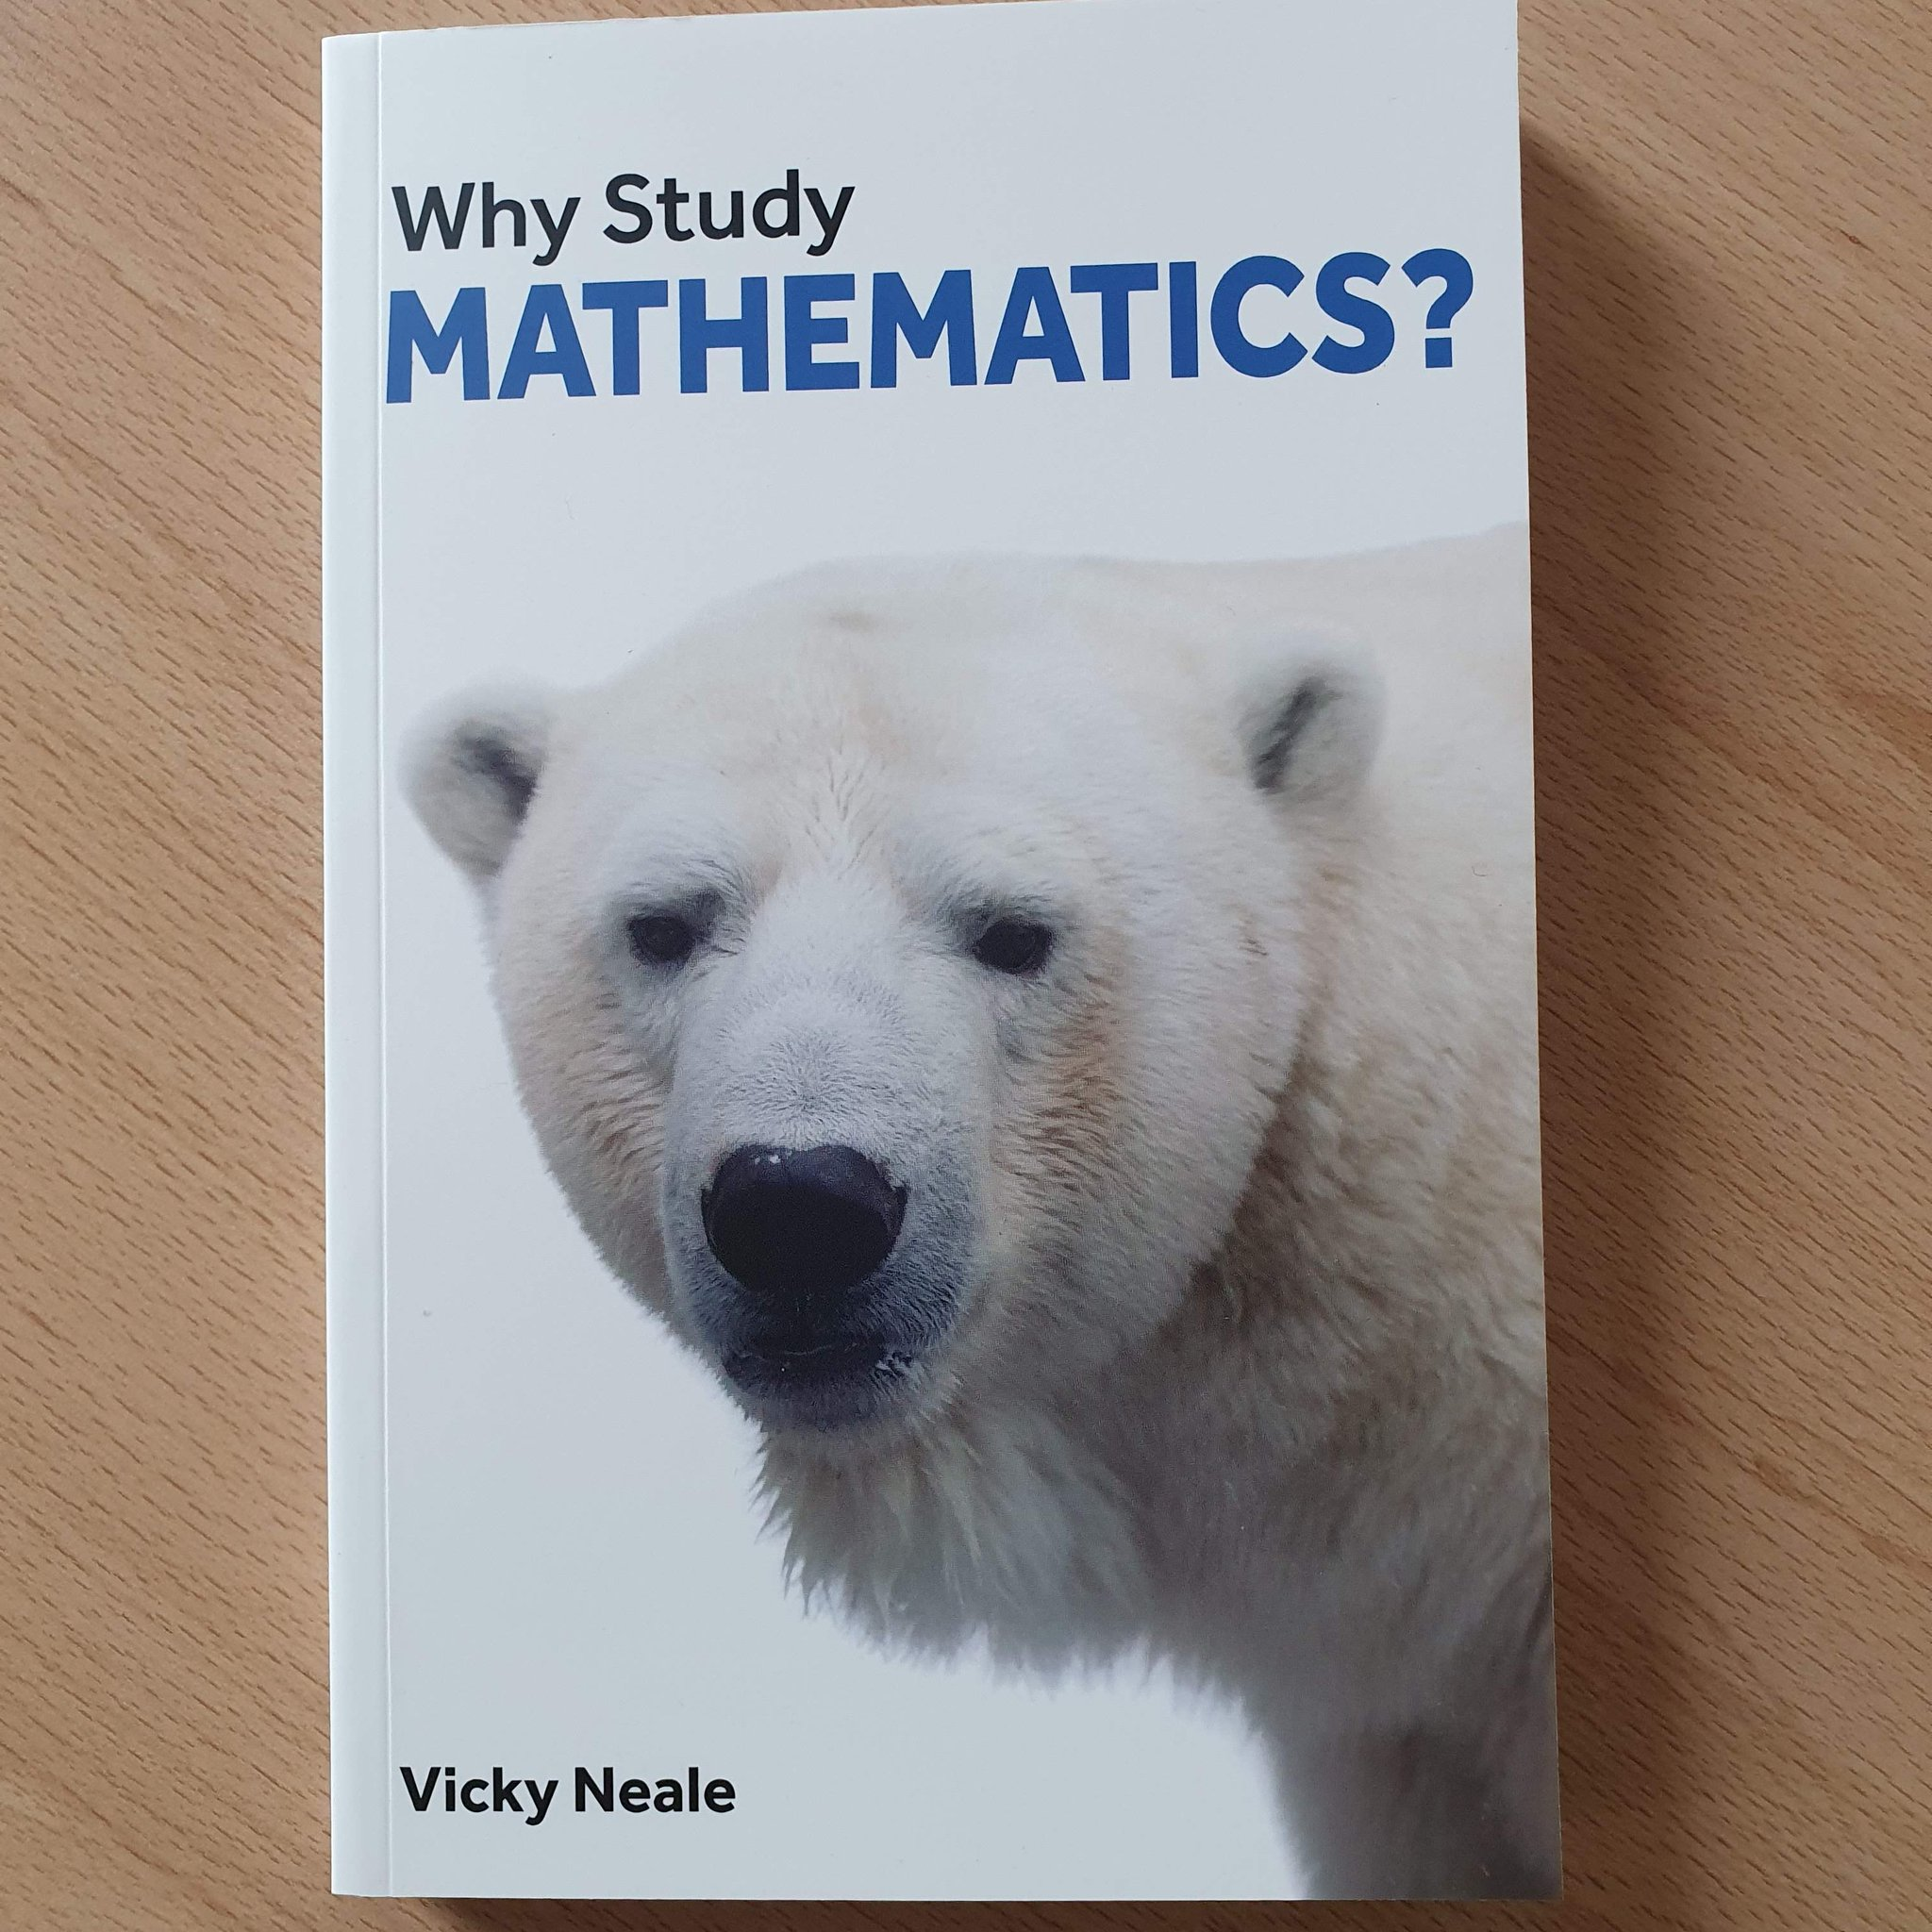 "Vicky Neale on Twitter: ""My new book ""Why Study Mathematics?"" is published  today! It's designed for students considering a maths degree, and their  teachers and families. @LPPbooks and I would love it"